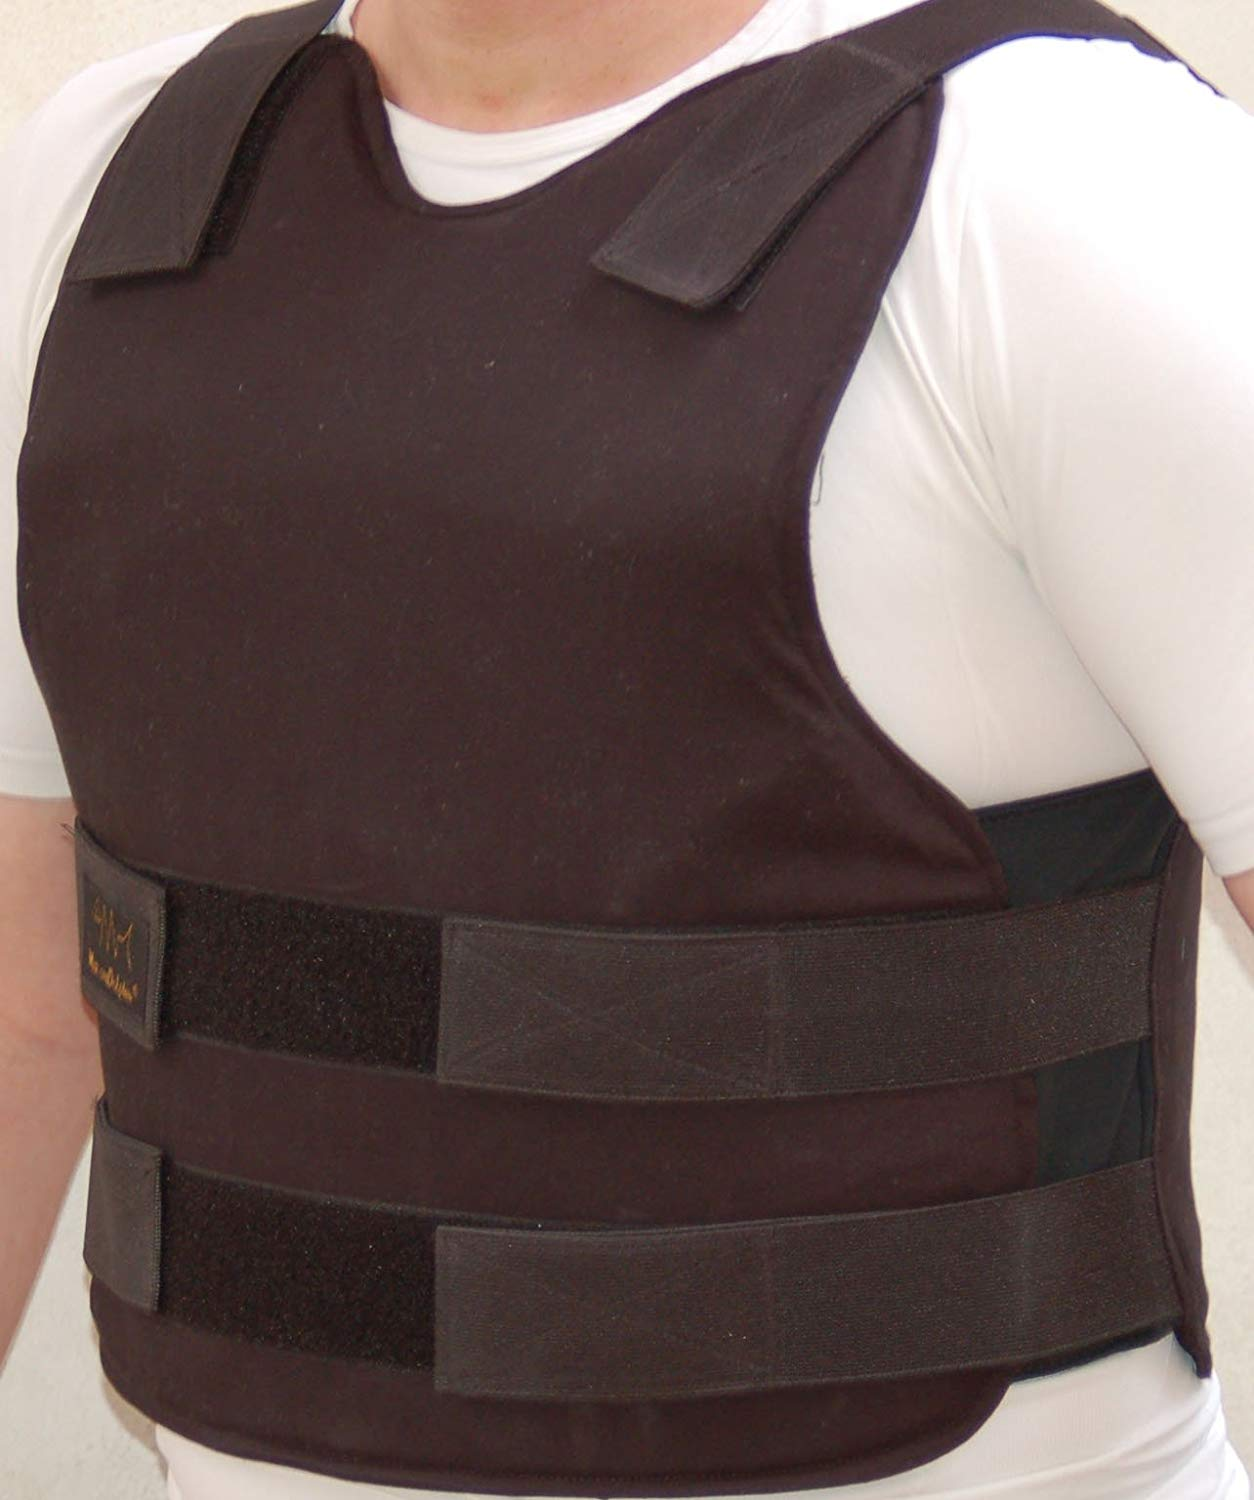 Concealable Level IIIA with Anti-Stab Level 1